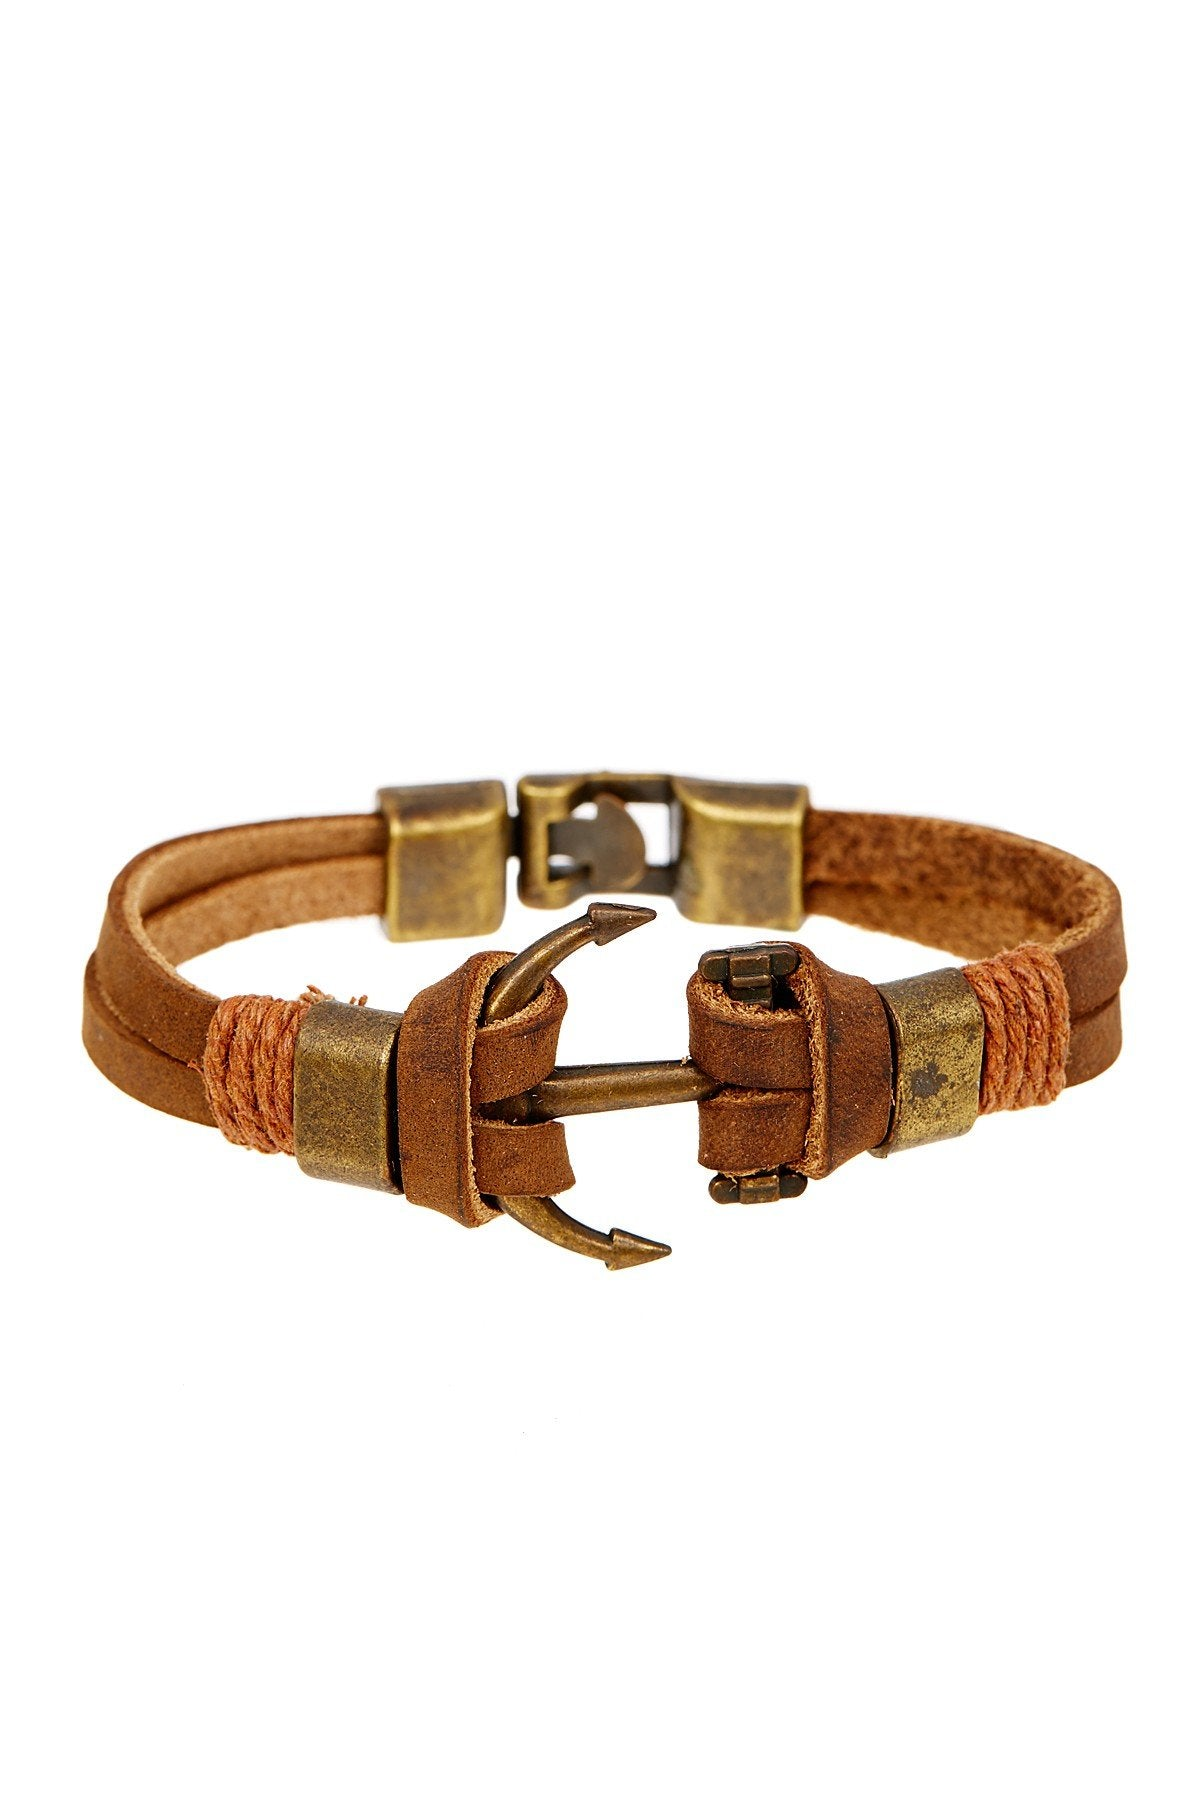 Brown Leather Oxidized Gold Rustic Bracelet